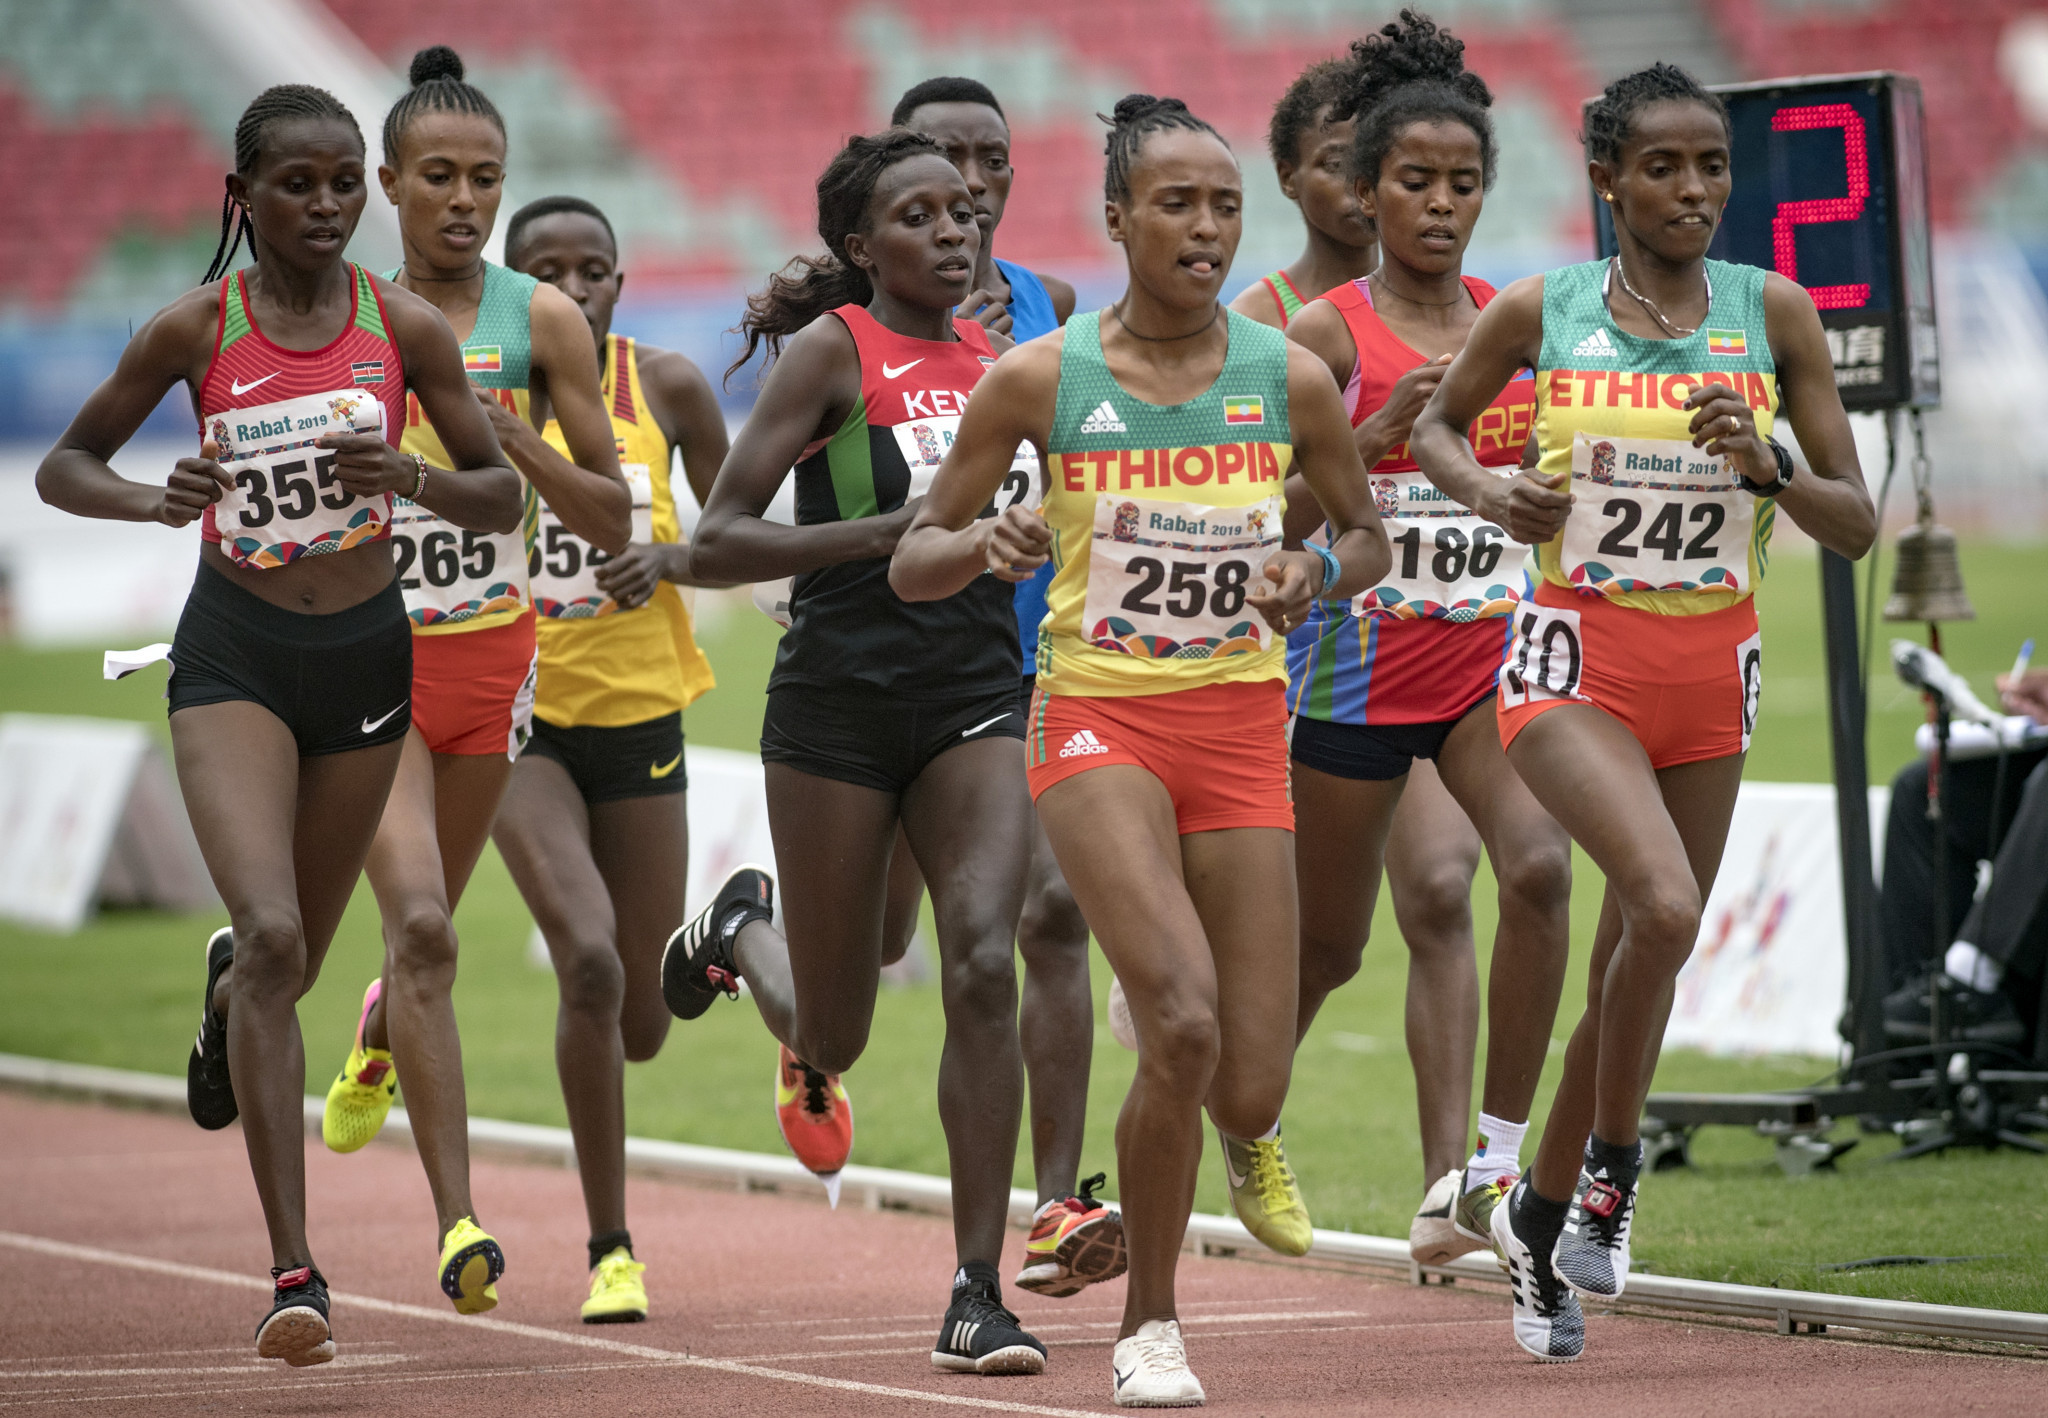 Moroccan capital Rabat hosted the last edition of the African Games in 2019 ©Getty Images